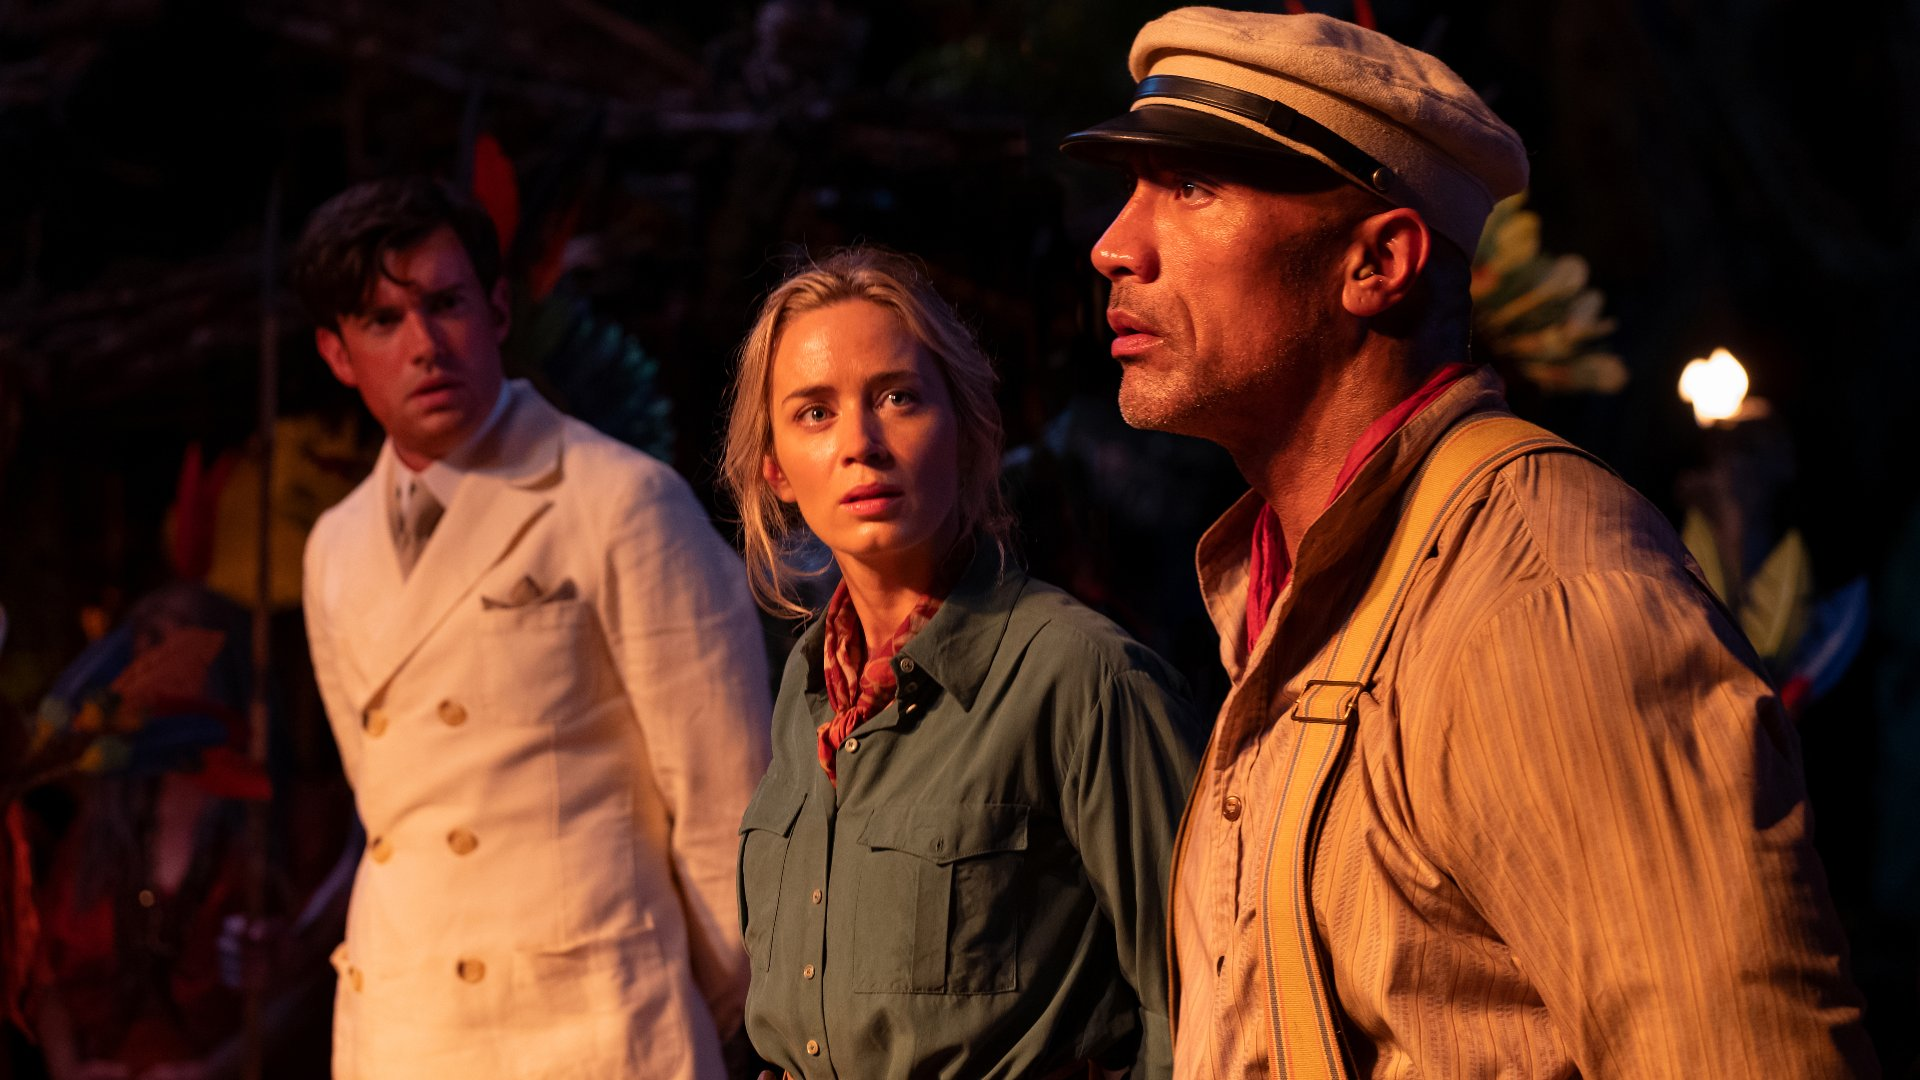 Jungle Cruise Trailer: Finally, The Rock Has Come Back to Summer Movies